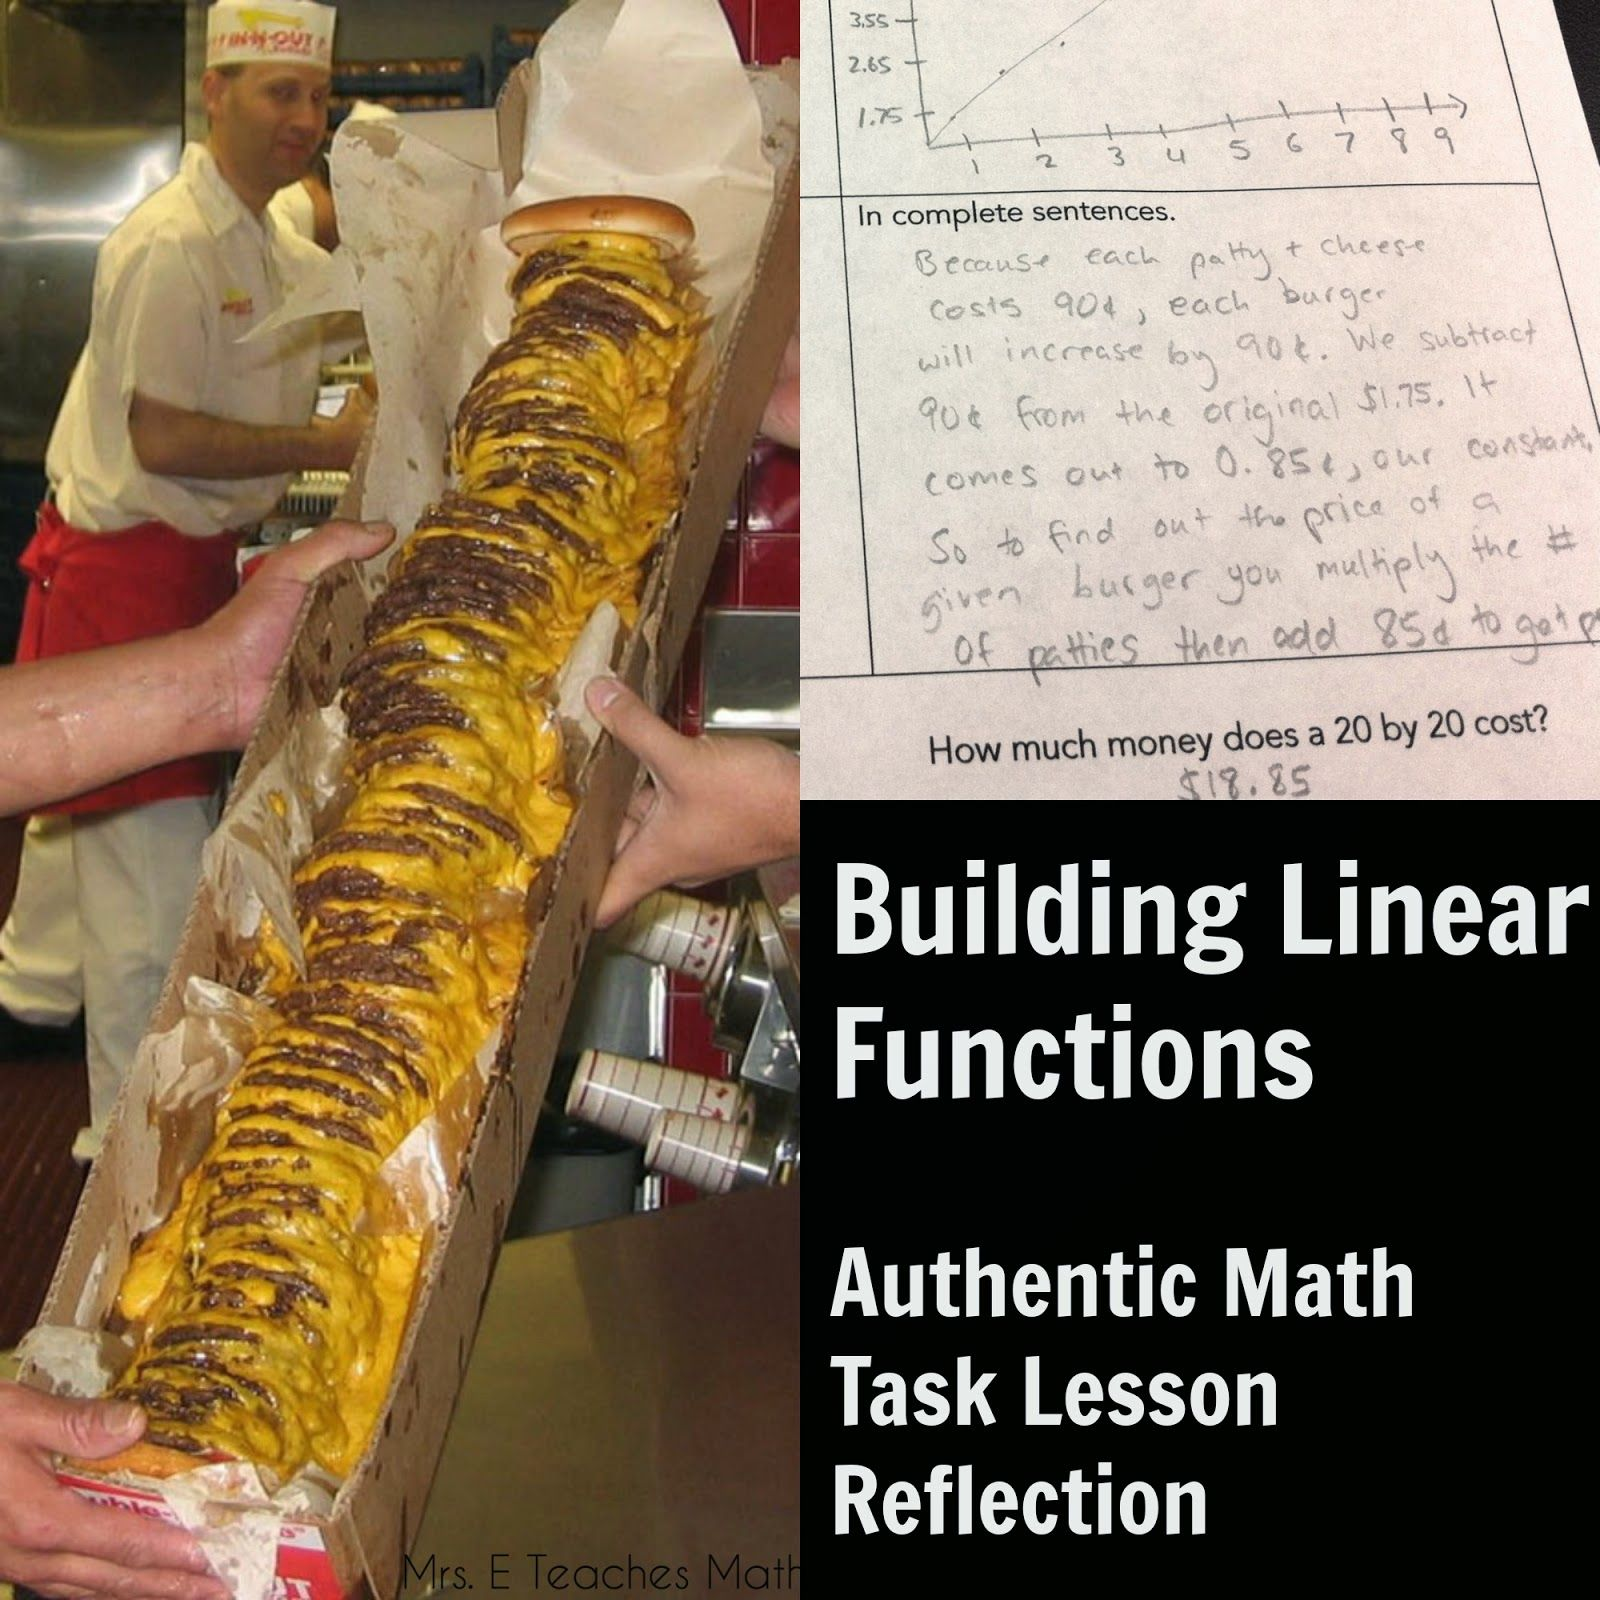 Authentic Math Task Lesson Reflection